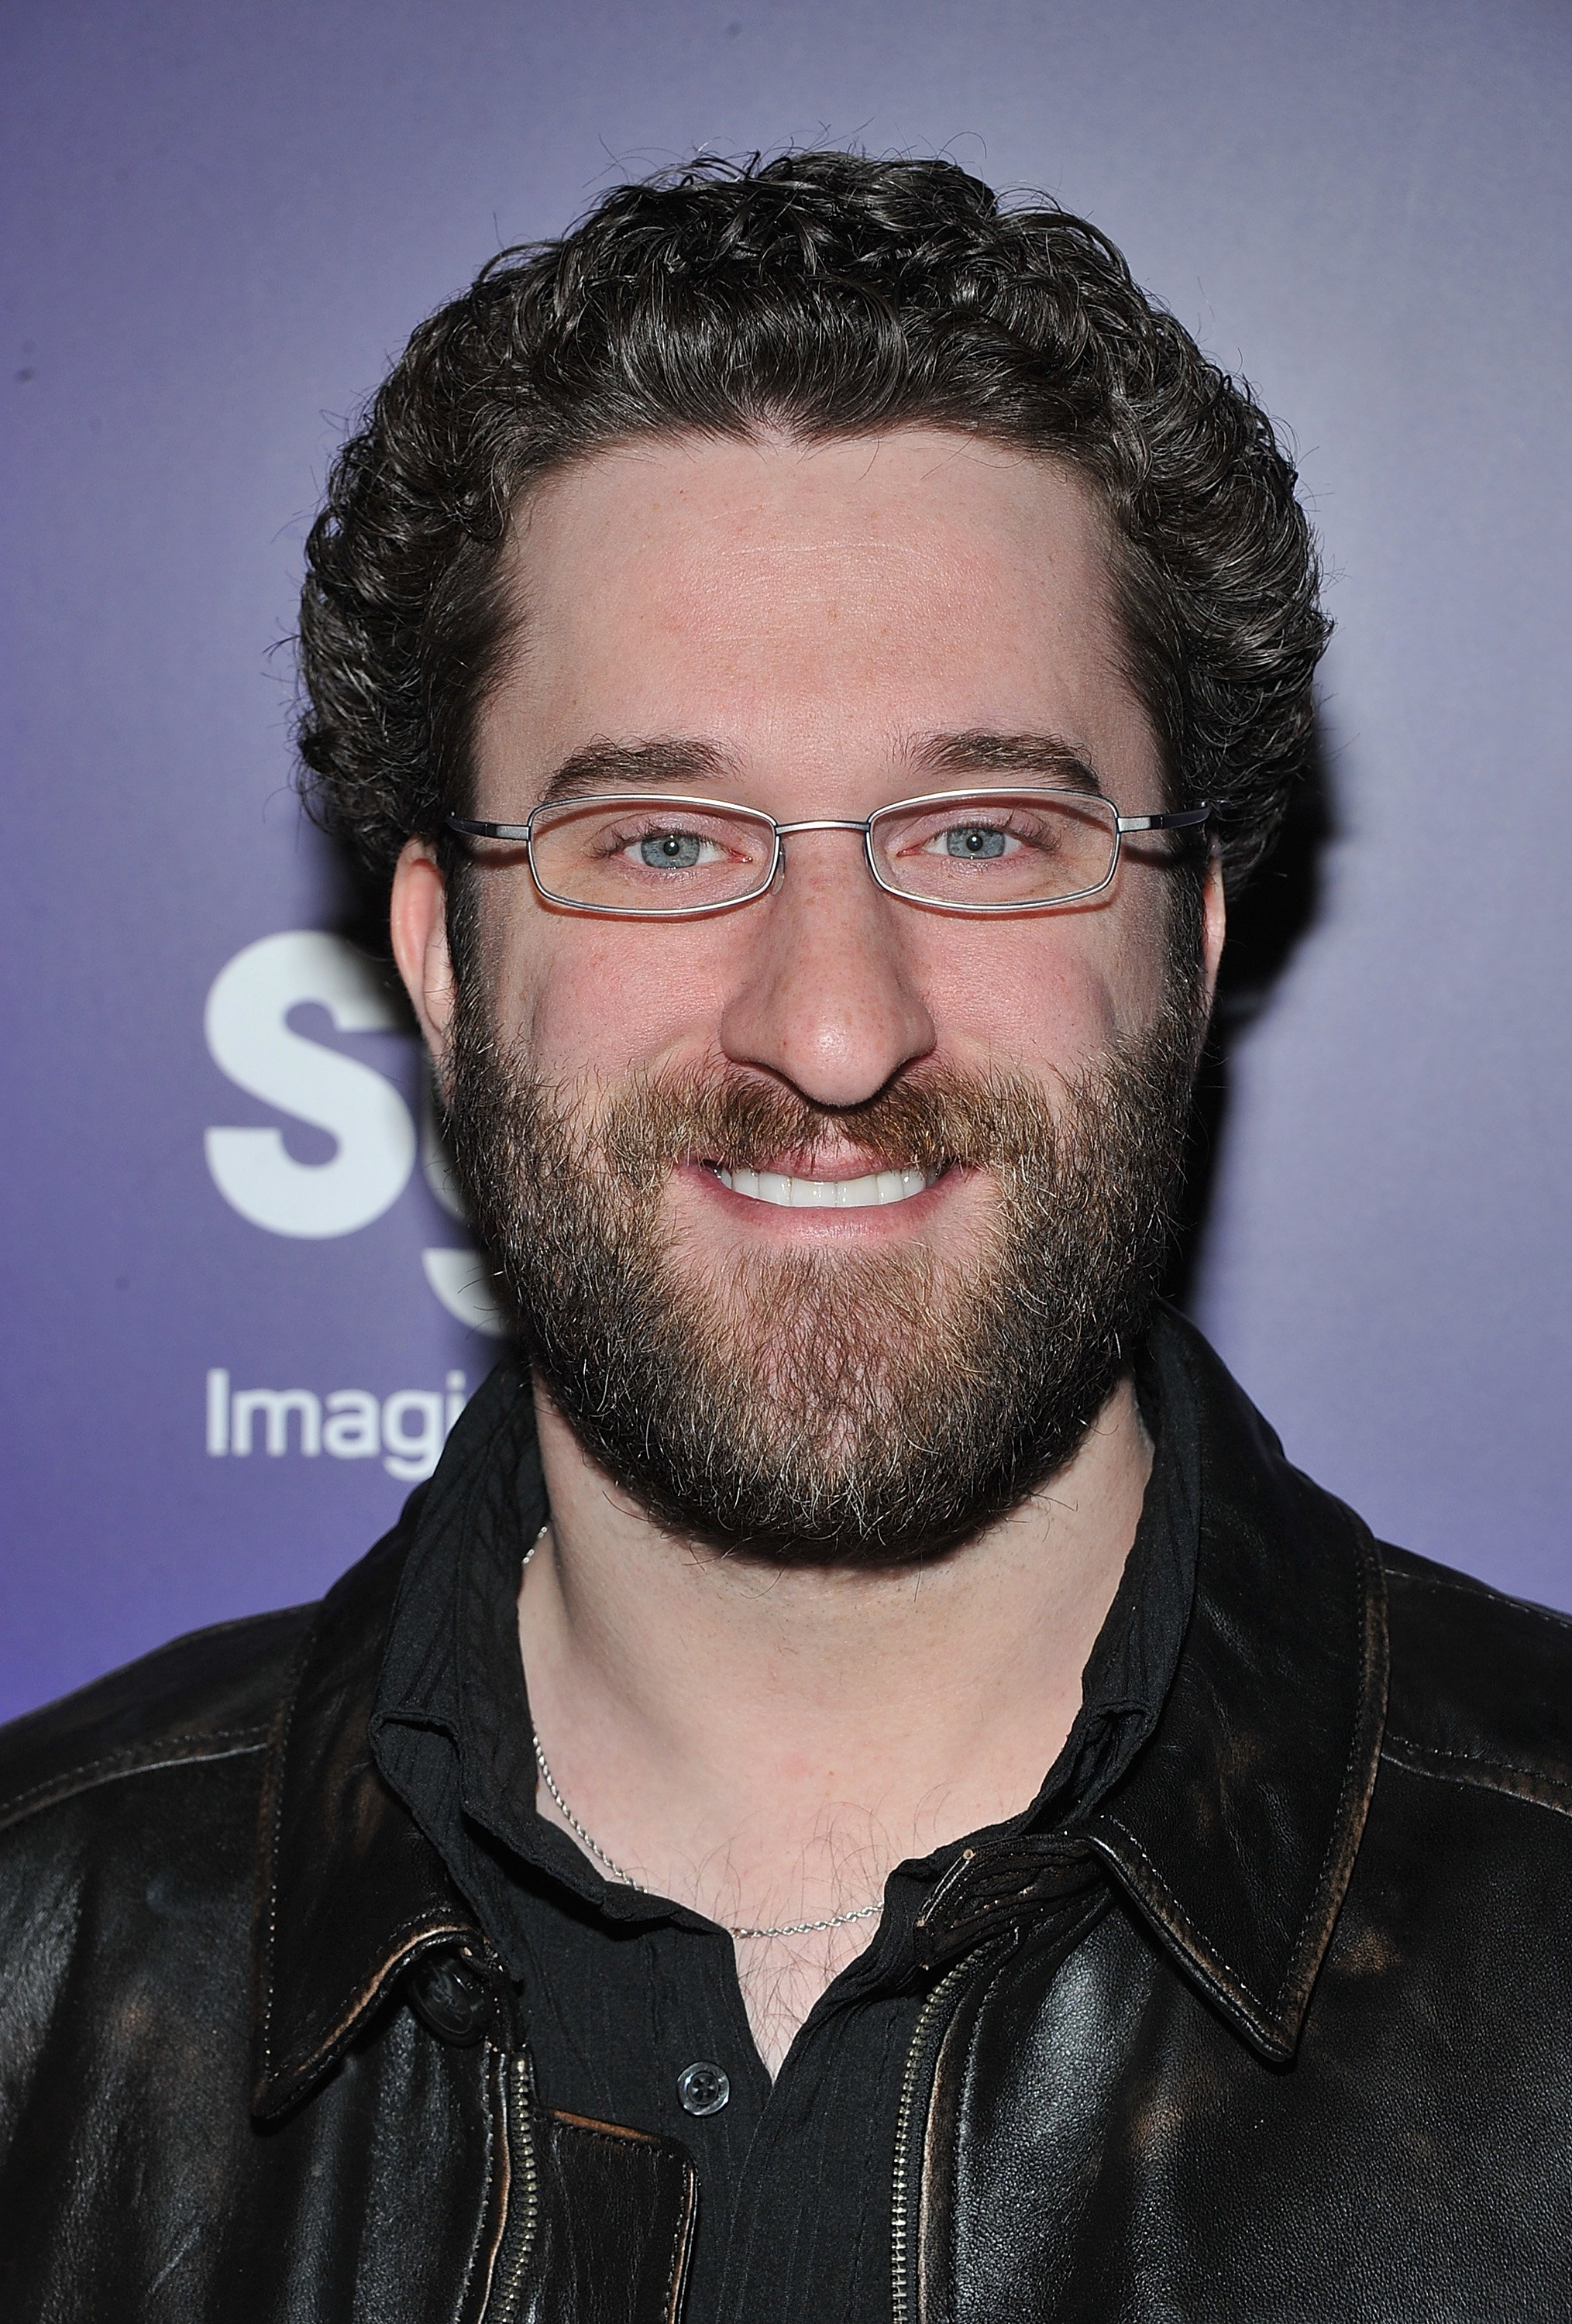 """Dustin Diamond attends the """"Mega Python vs. Gatoroid"""" premiere at the Ziegfeld Theatre on January 24, 2011 in New York City.   Source: Getty Images"""